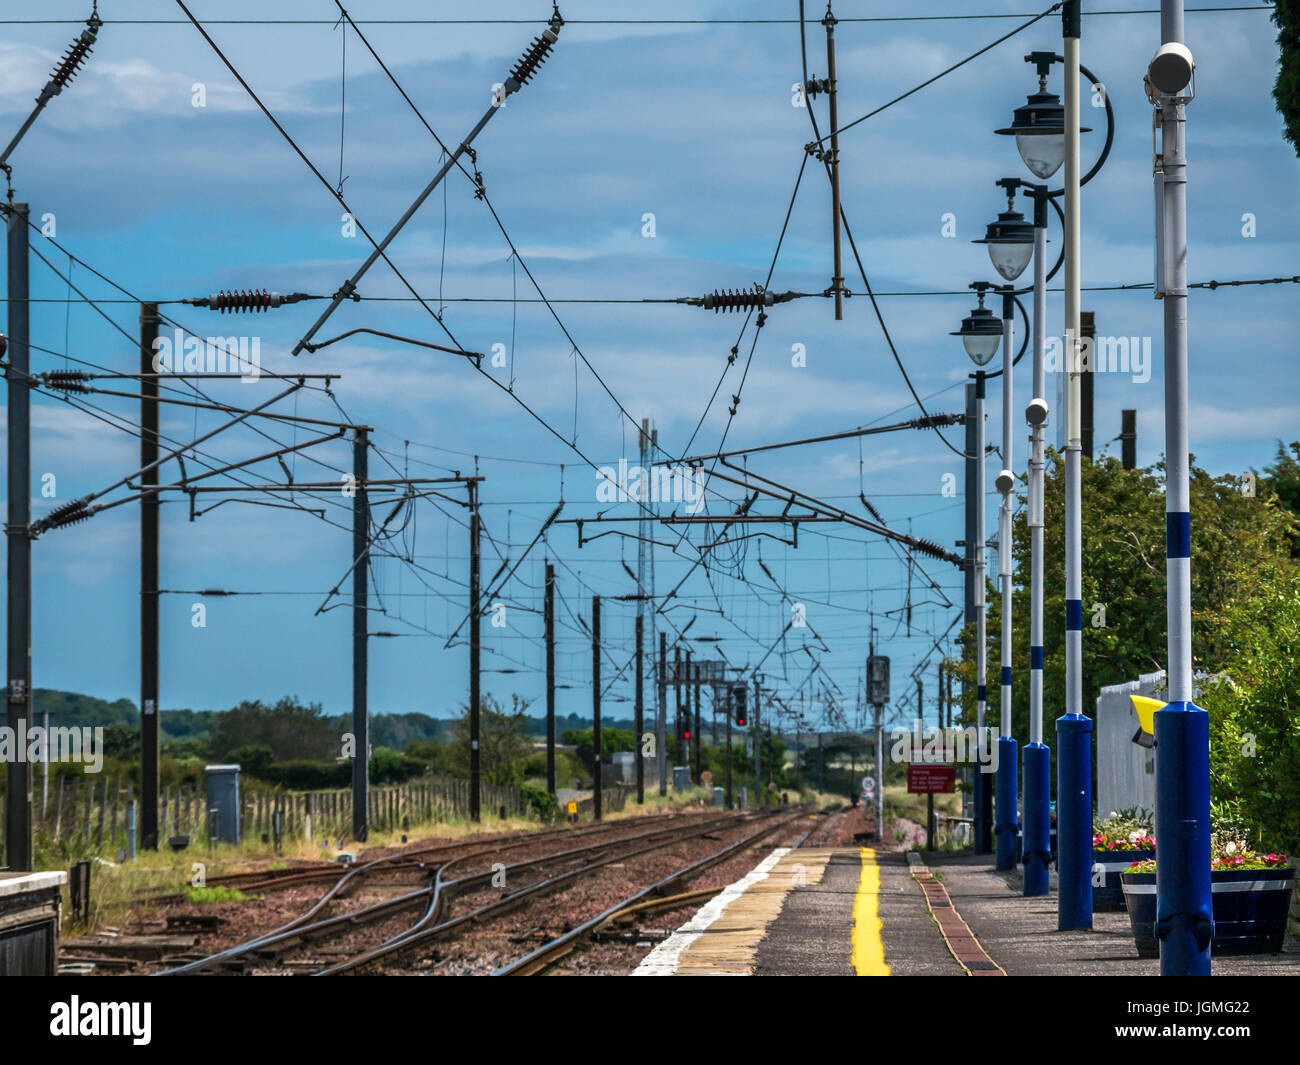 Drem train staton platform and view down railway tracks with overhead cables, East Lothian, Scotland, UK - Stock Image